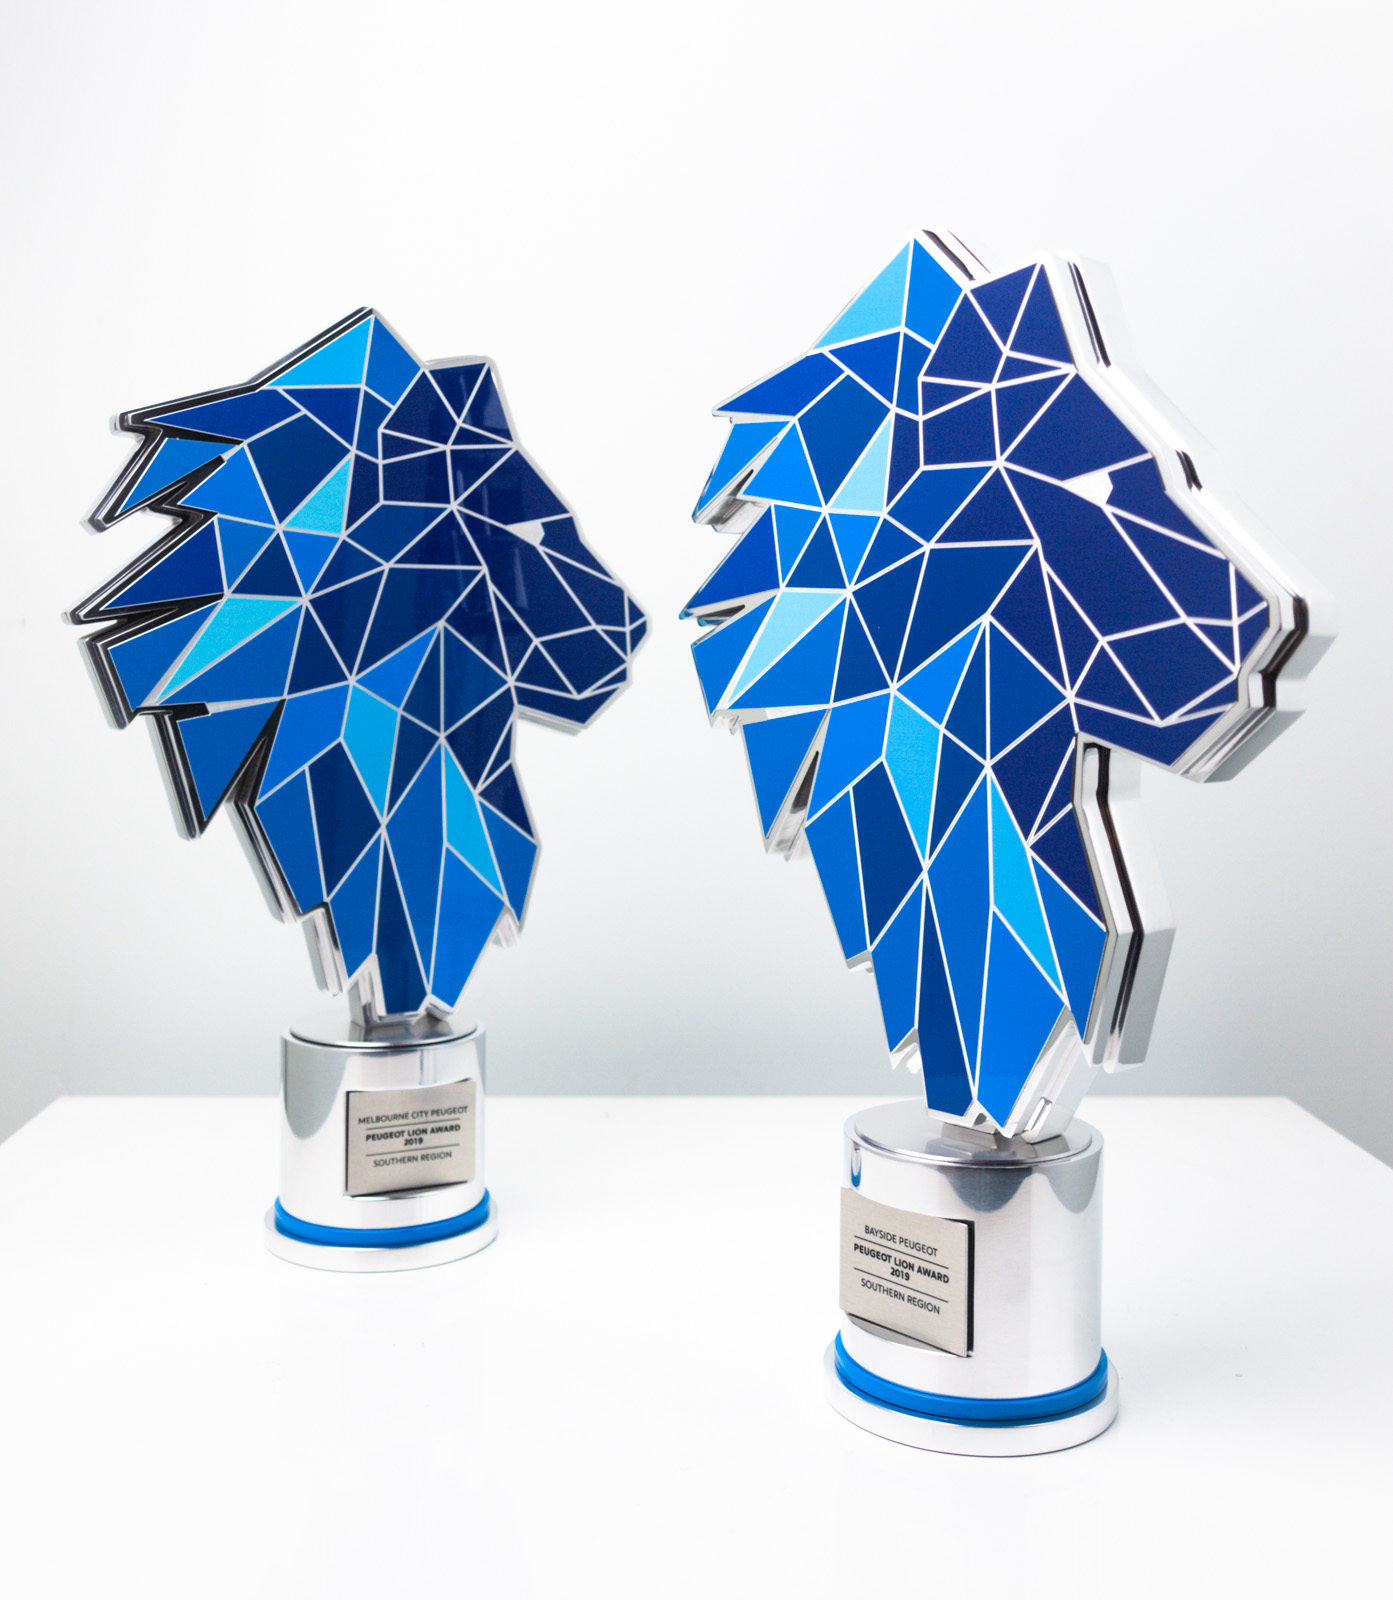 The Peugeot Dealer of the Year Award Trophies